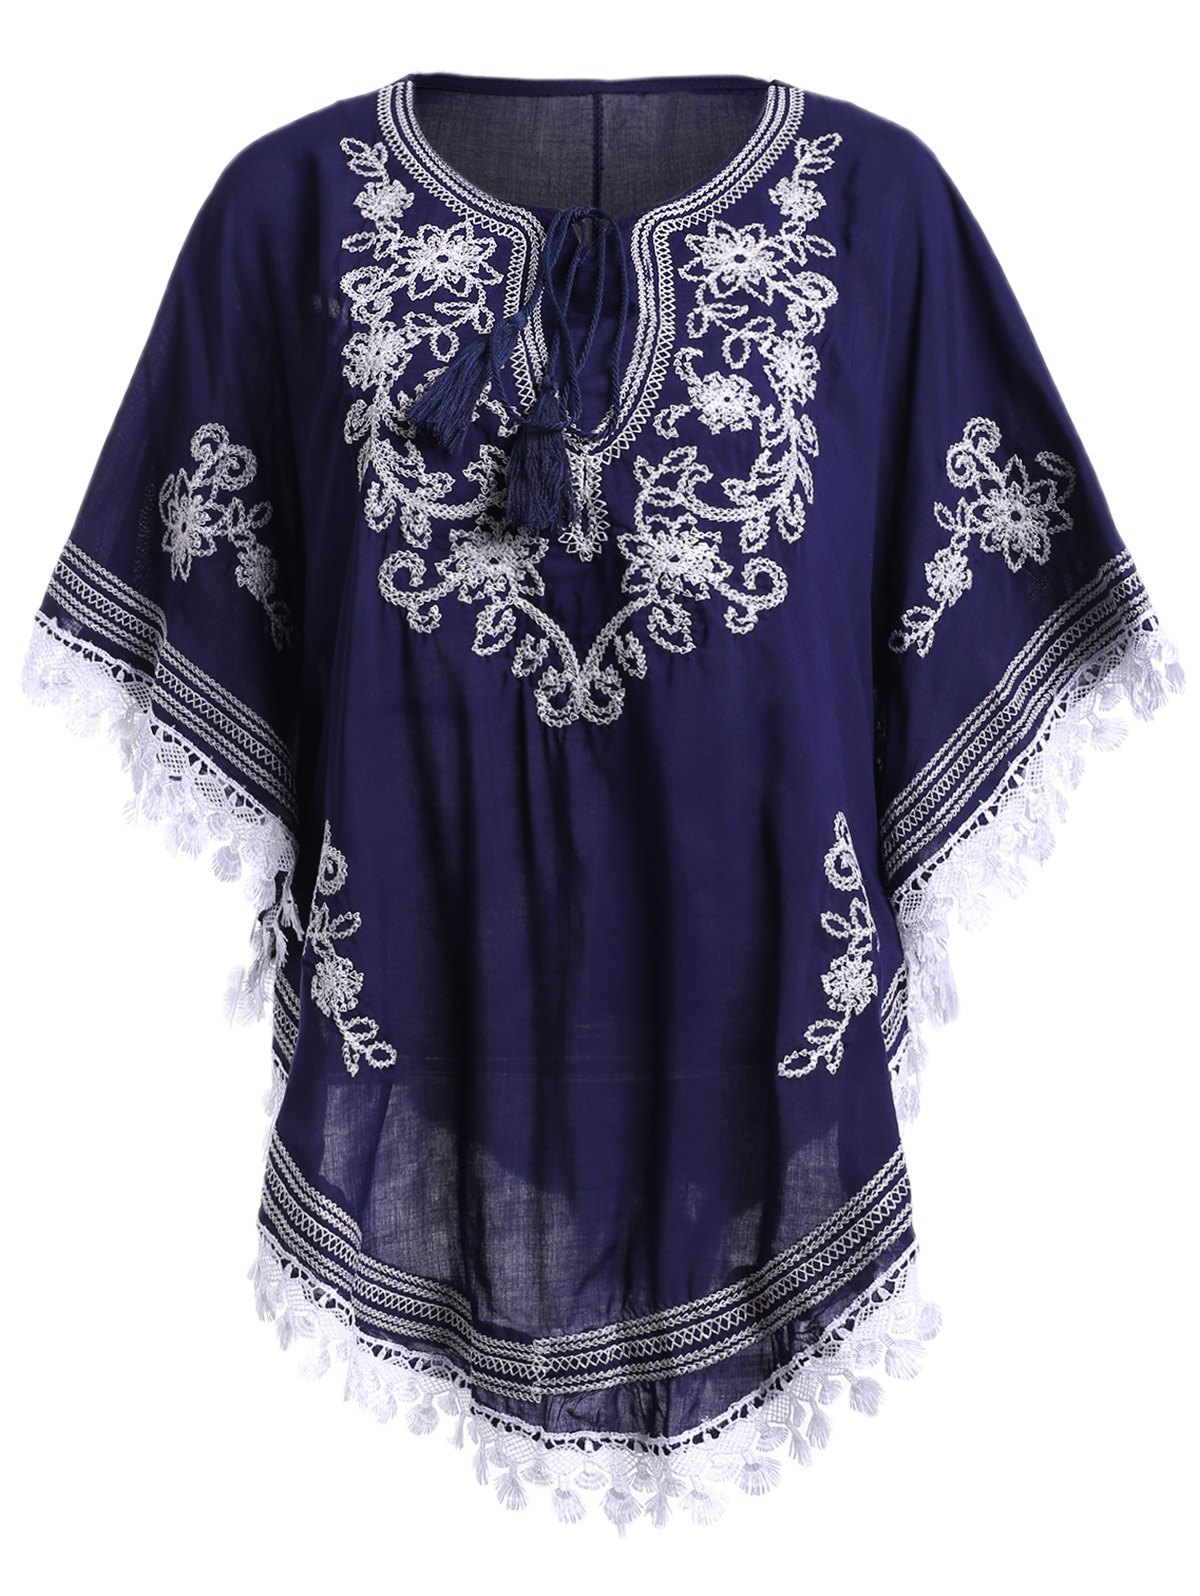 Bohemian Women's Embroidery Batwing Sleeves Blouse - PURPLISH BLUE ONE SIZE(FIT SIZE XS TO M)